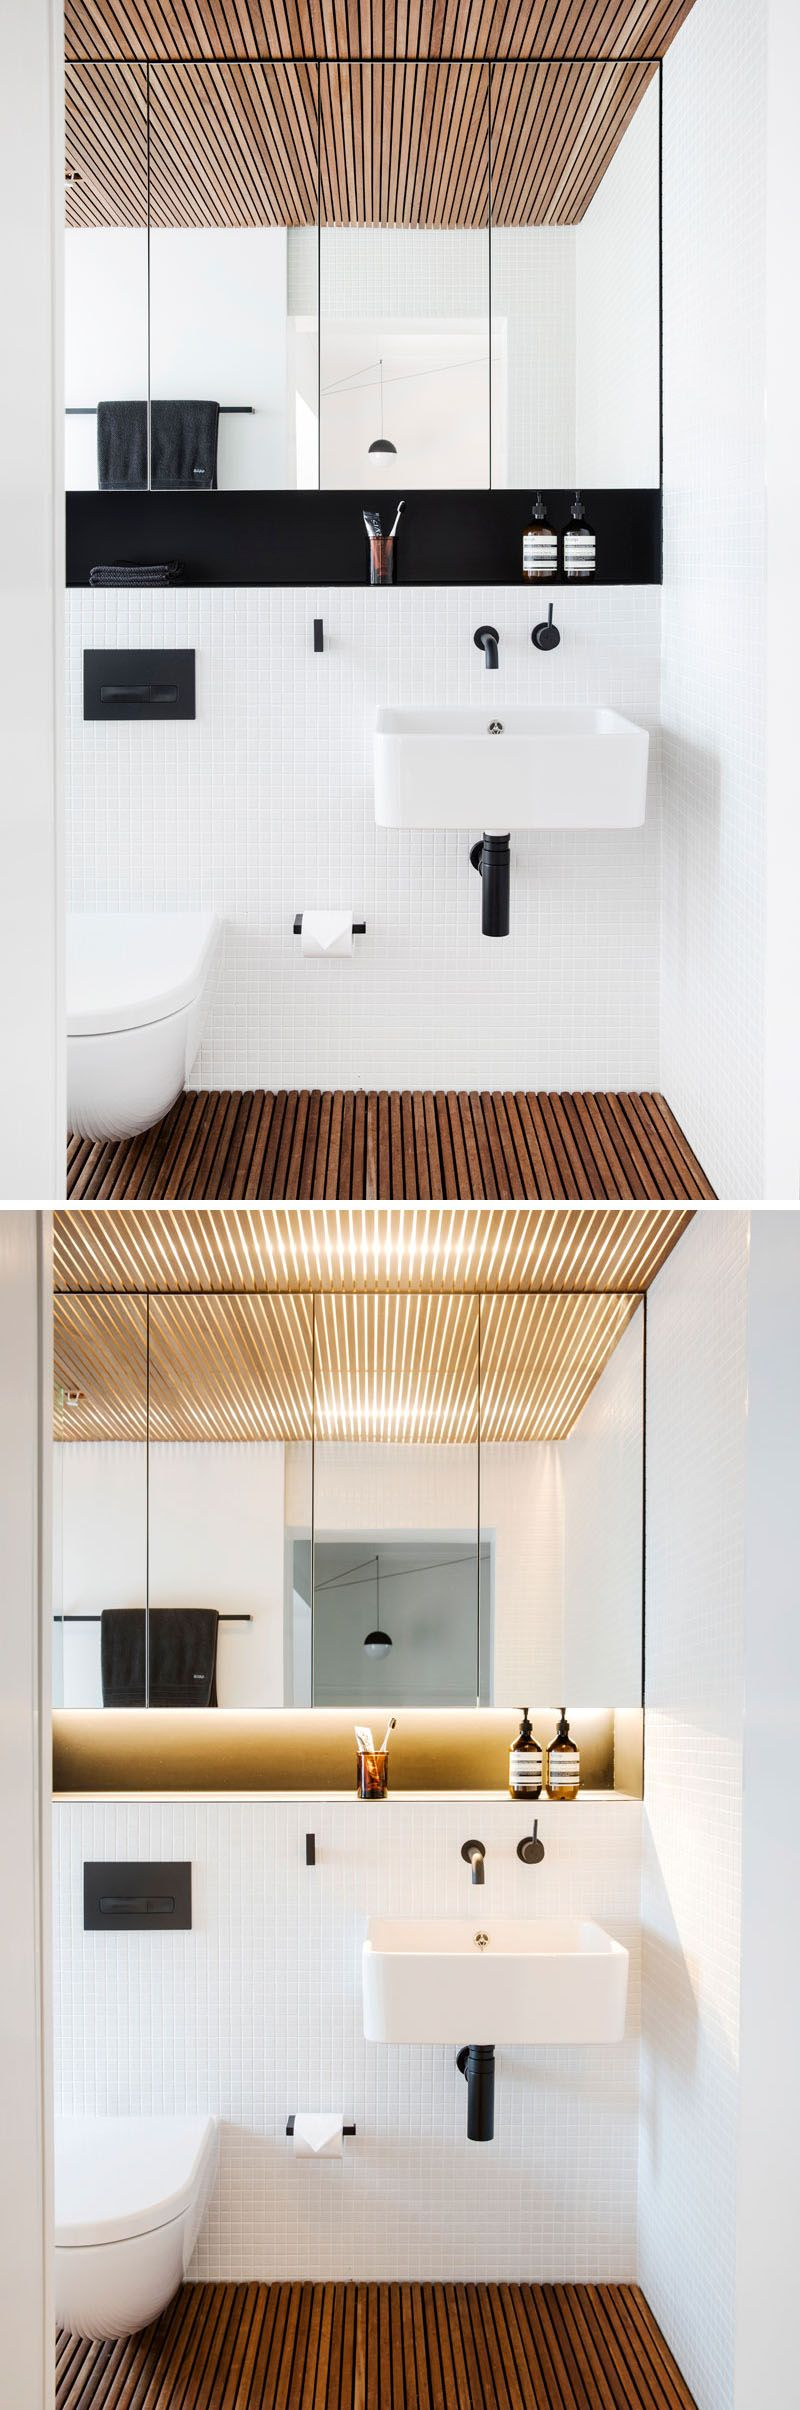 This Small Apartment Is Filled With Creative Storage Solutions White Tiles And Modern Bathroom